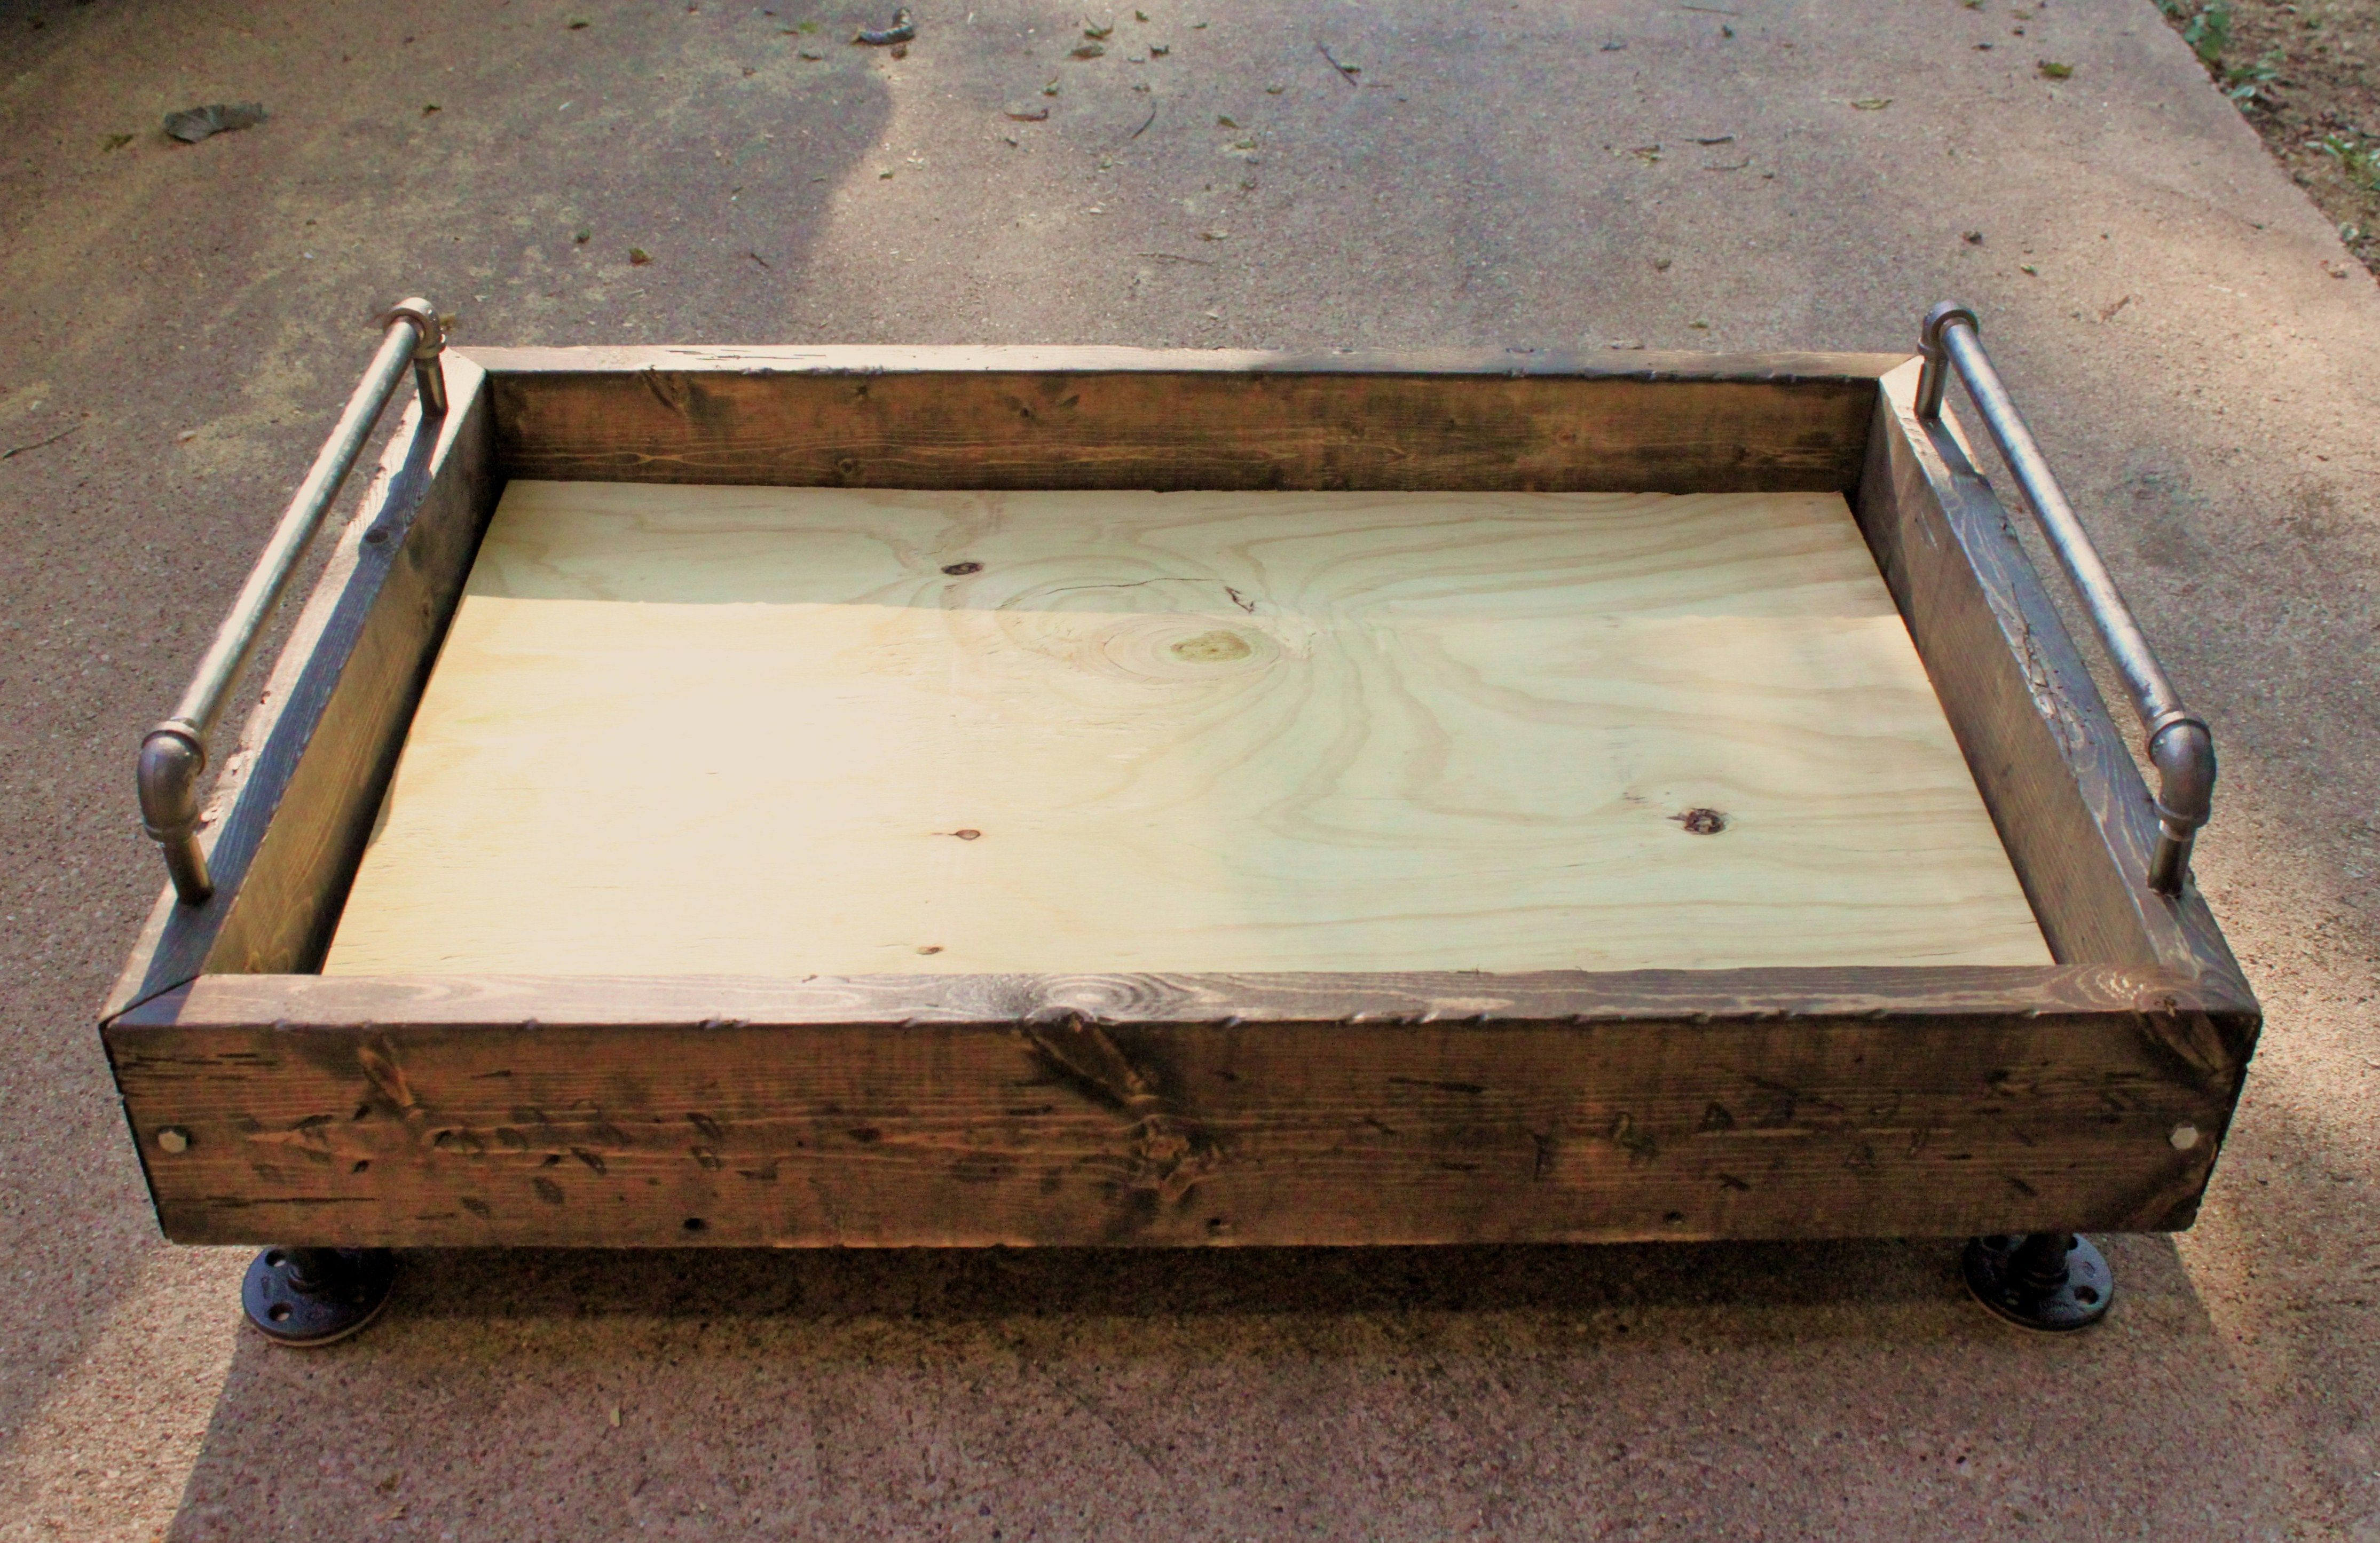 My Finished Dog Bed Box With Feet Rails And Plywood Bottom